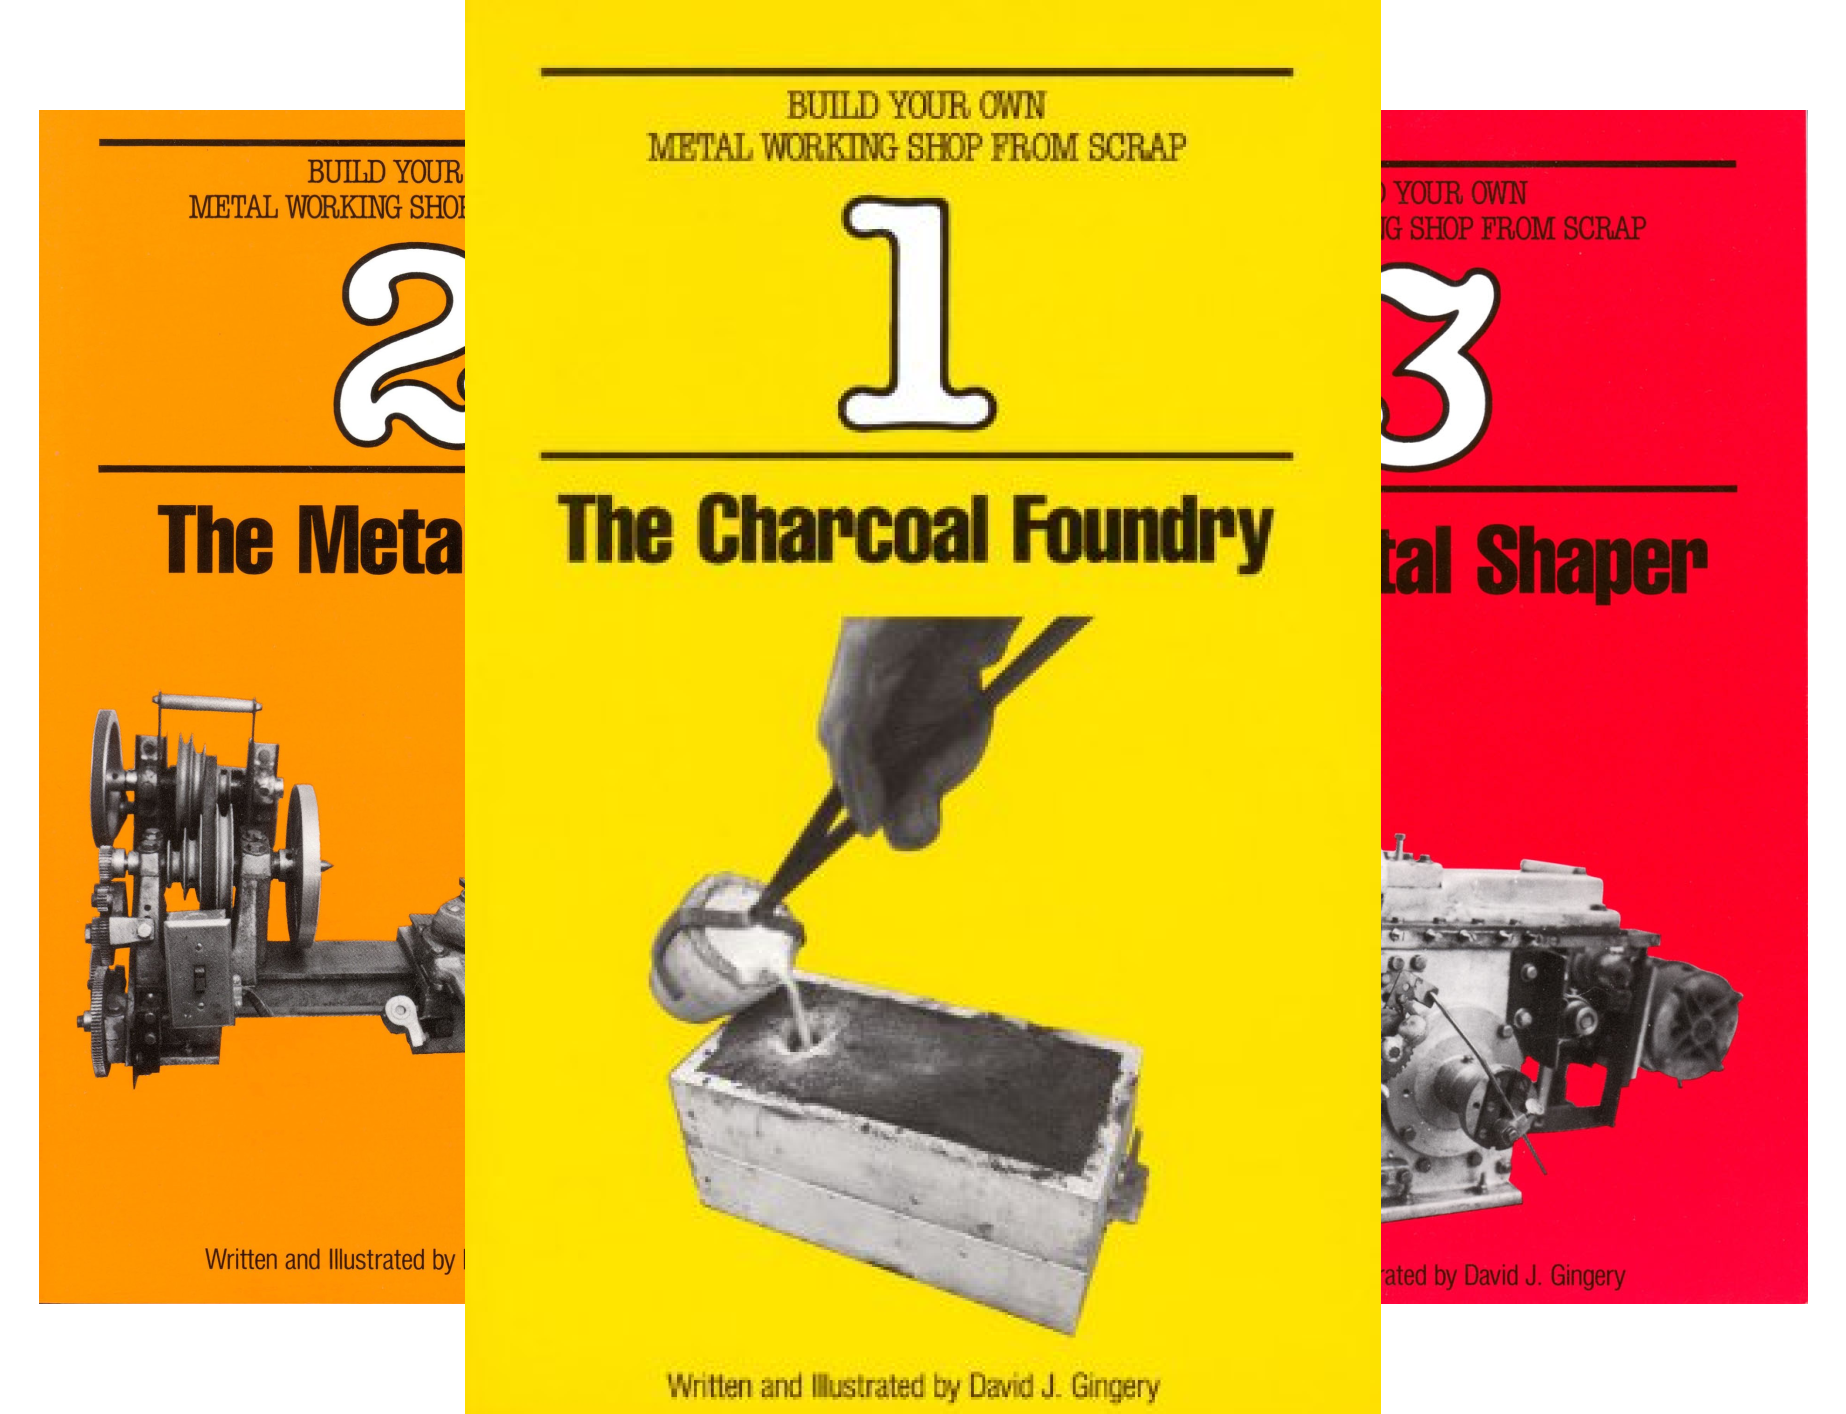 Build Your Own Metal Working Shop From Scrap Series (7 Book Series)